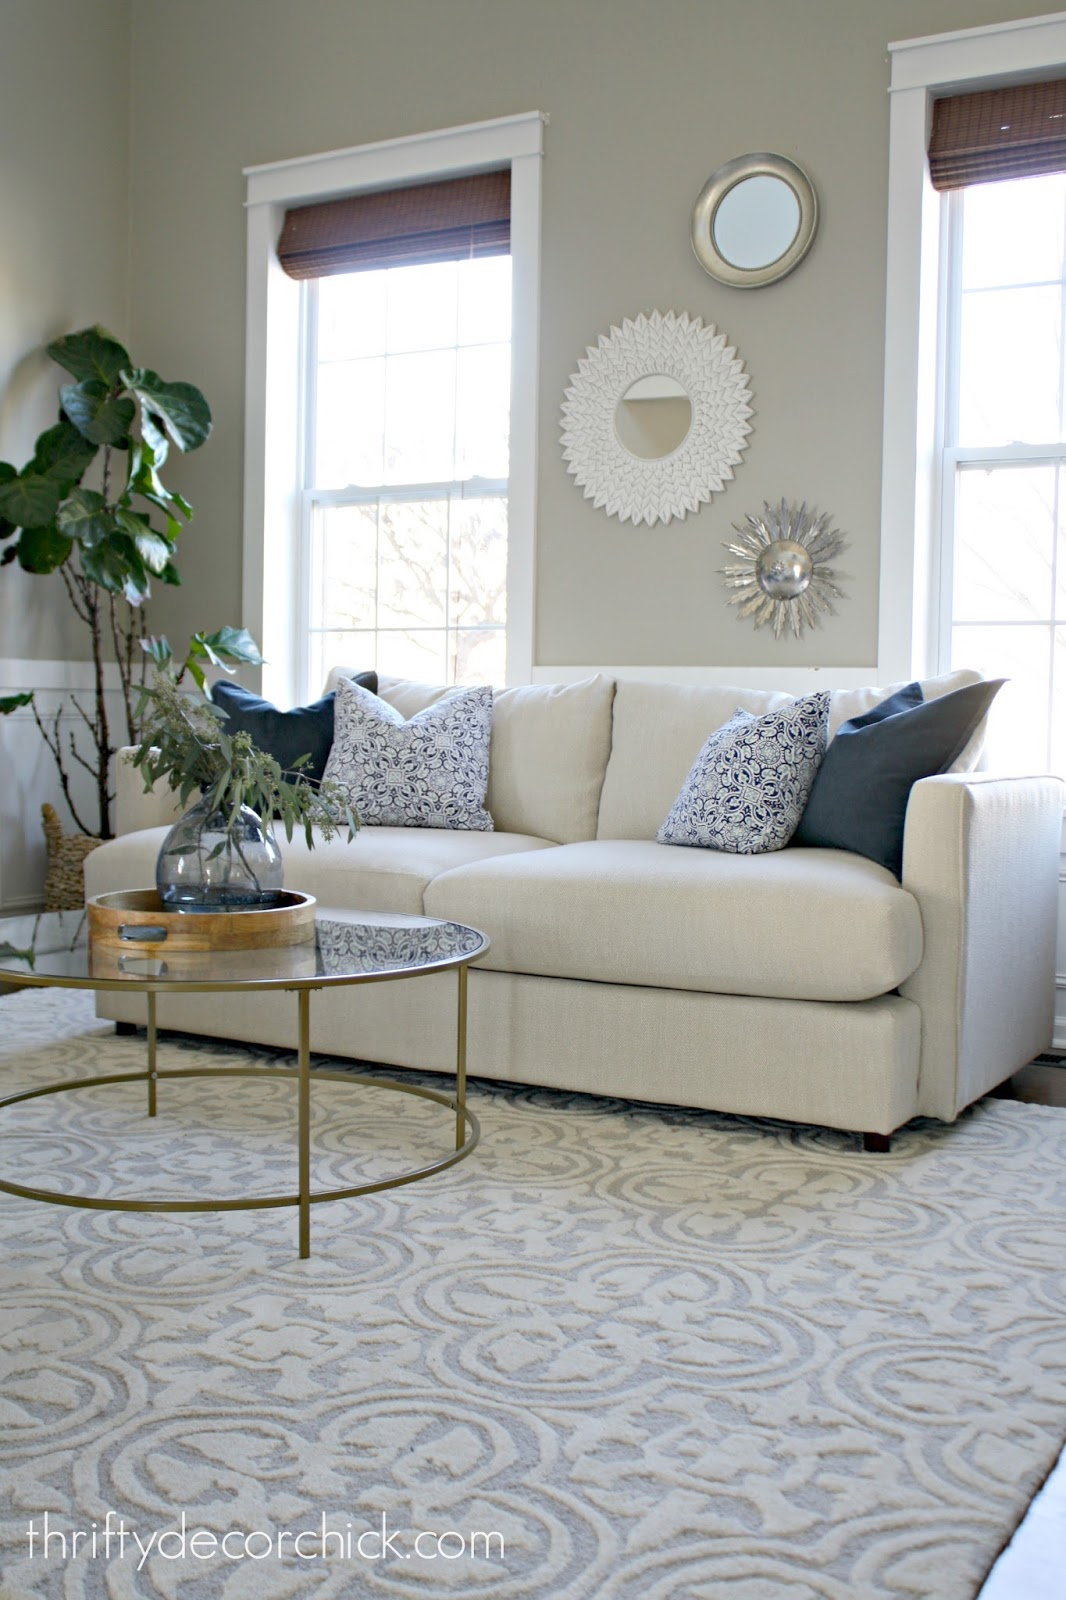 Help Me Design My Living Room: One Sofa Or Two? Help Me Decide! From Thrifty Decor Chick